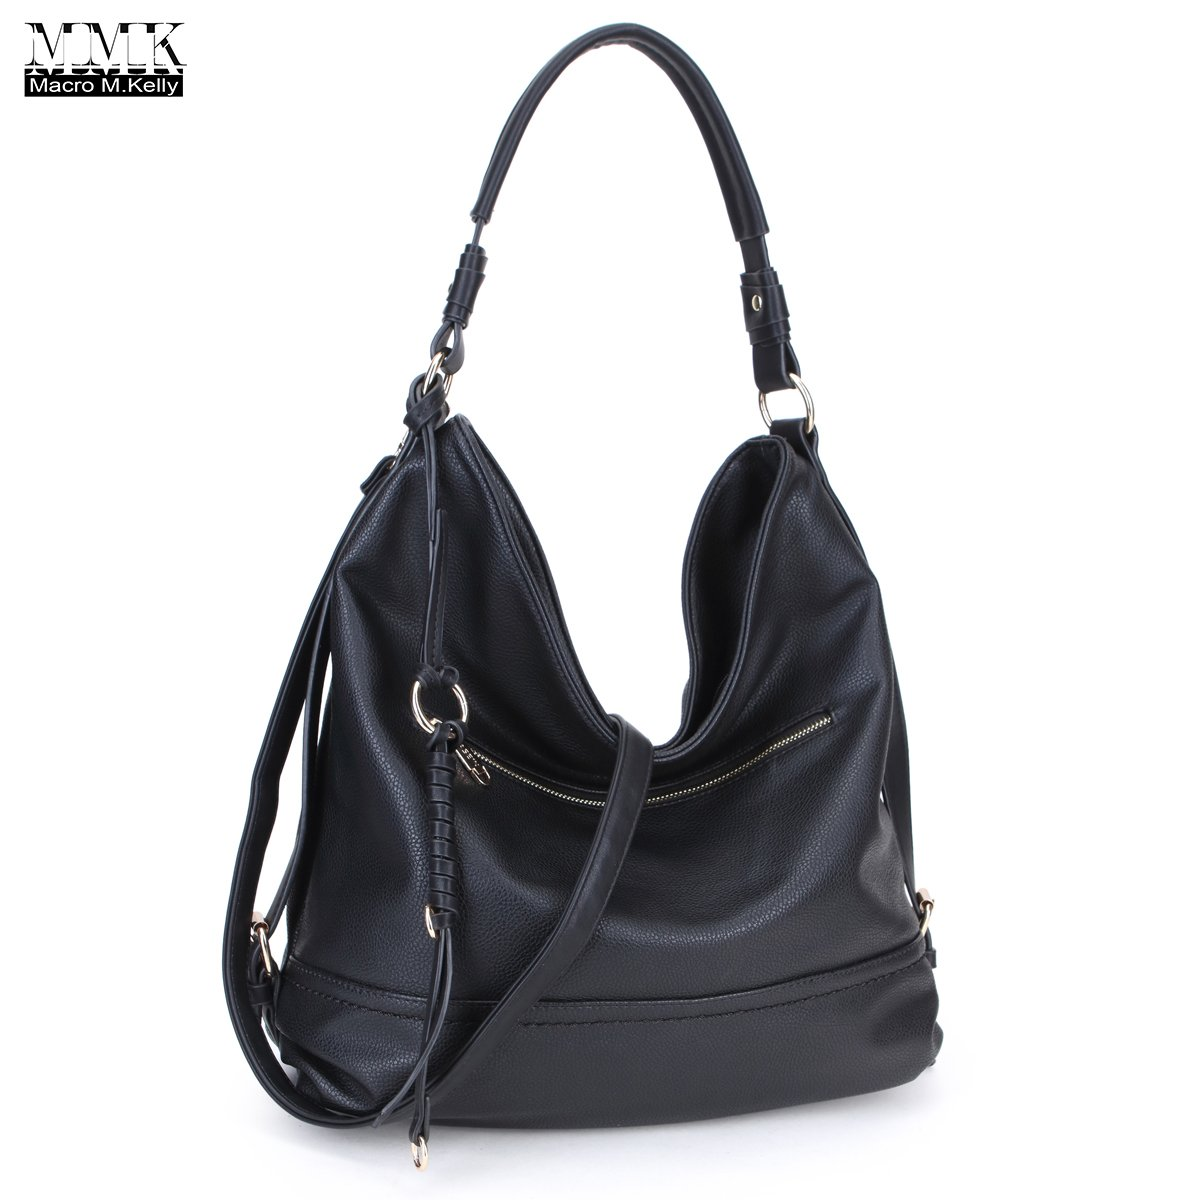 MMK Collection Women Soft Water Wash PU Leather Vintage(6332) Top Dual Handle Crossbody Fashion Cowboy Young Style Chained Hobo Shoulder Bag Handbag (MA-KK-13-3373-BK)